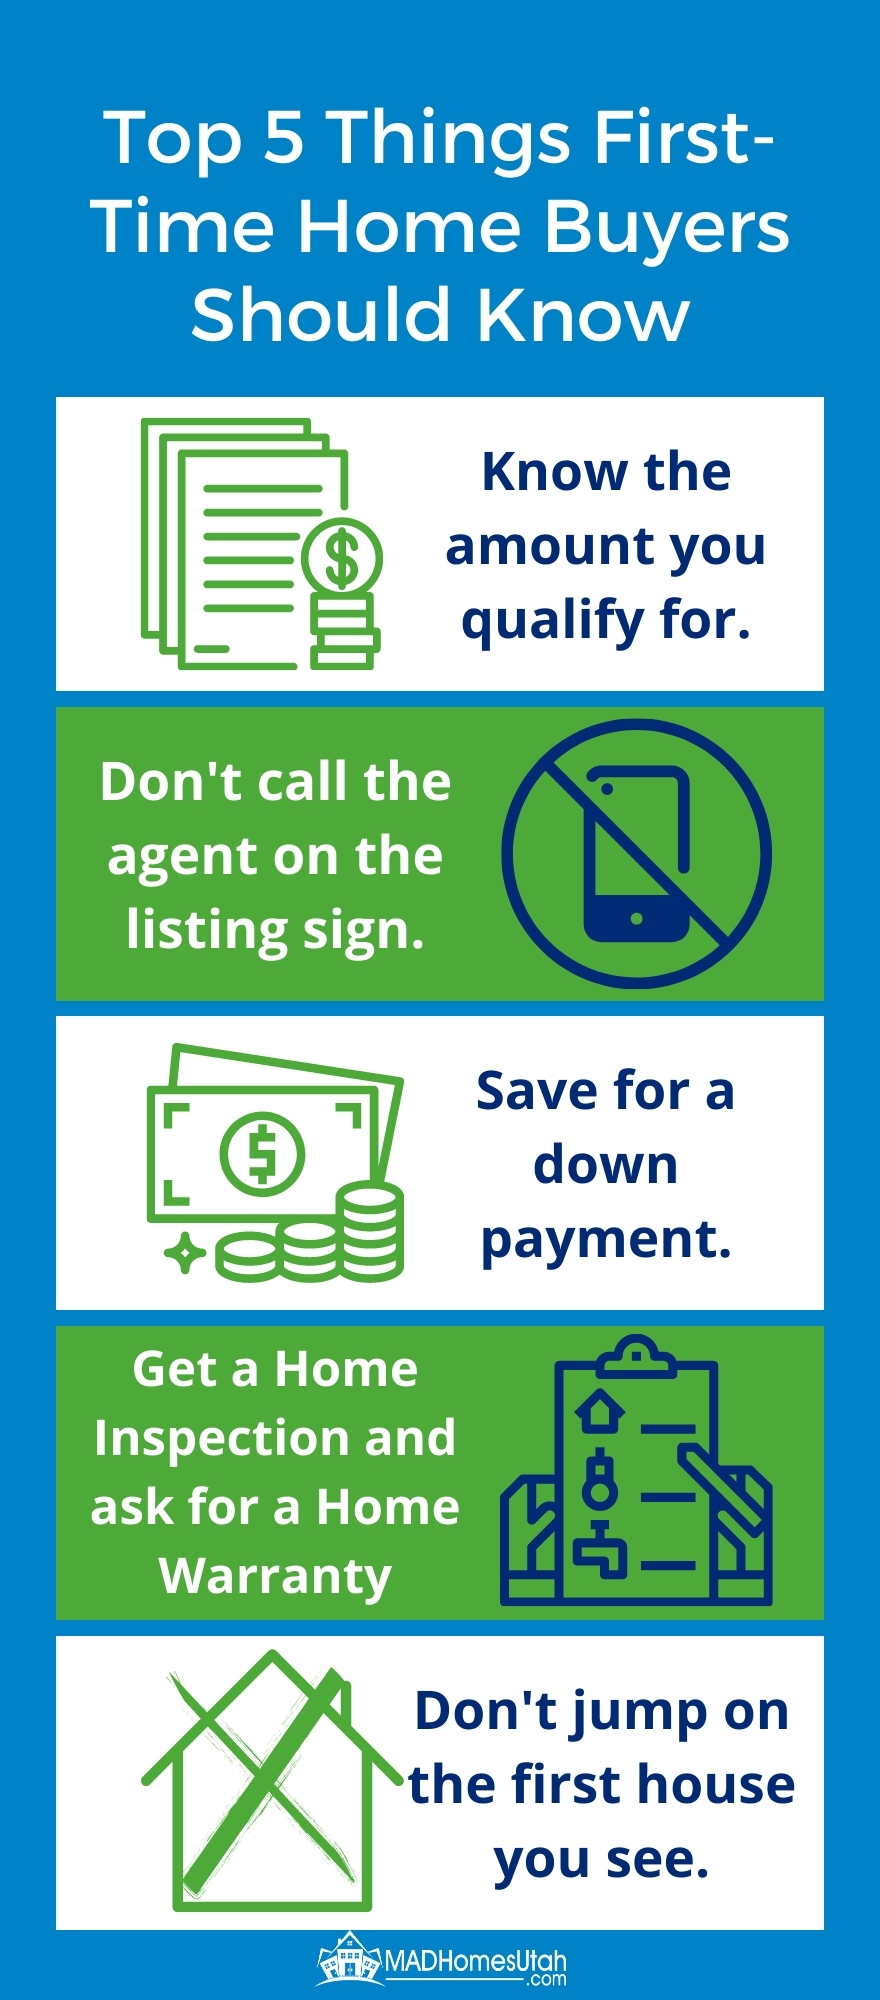 Infographic listing the top 5 things first time home buyers should know